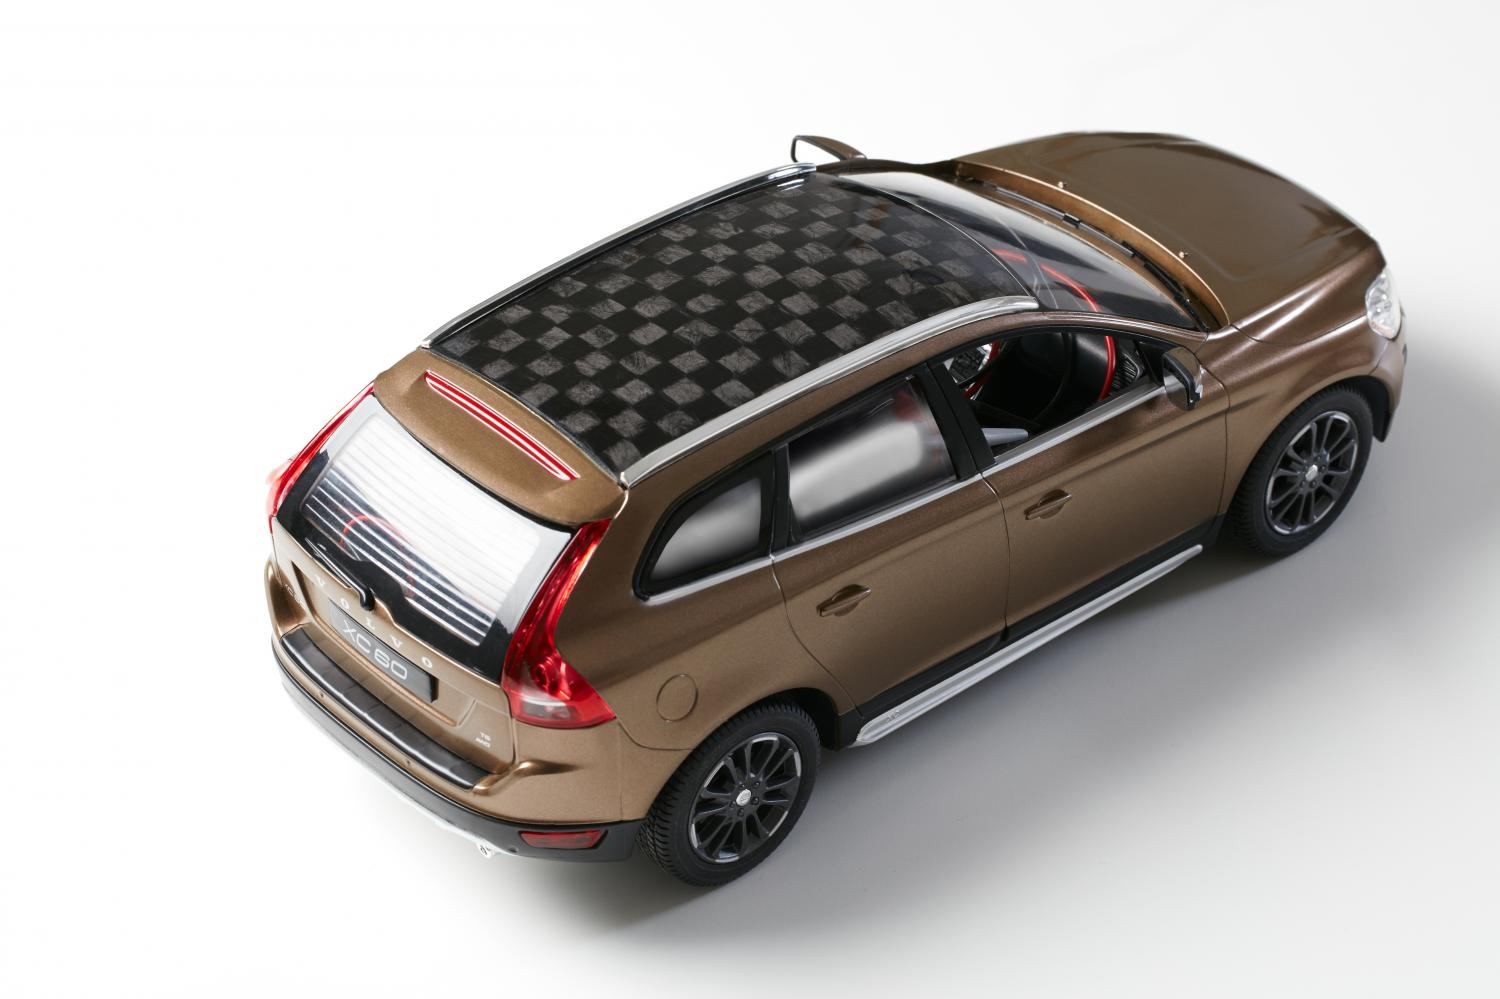 Carbon fiber from wood is used to build car